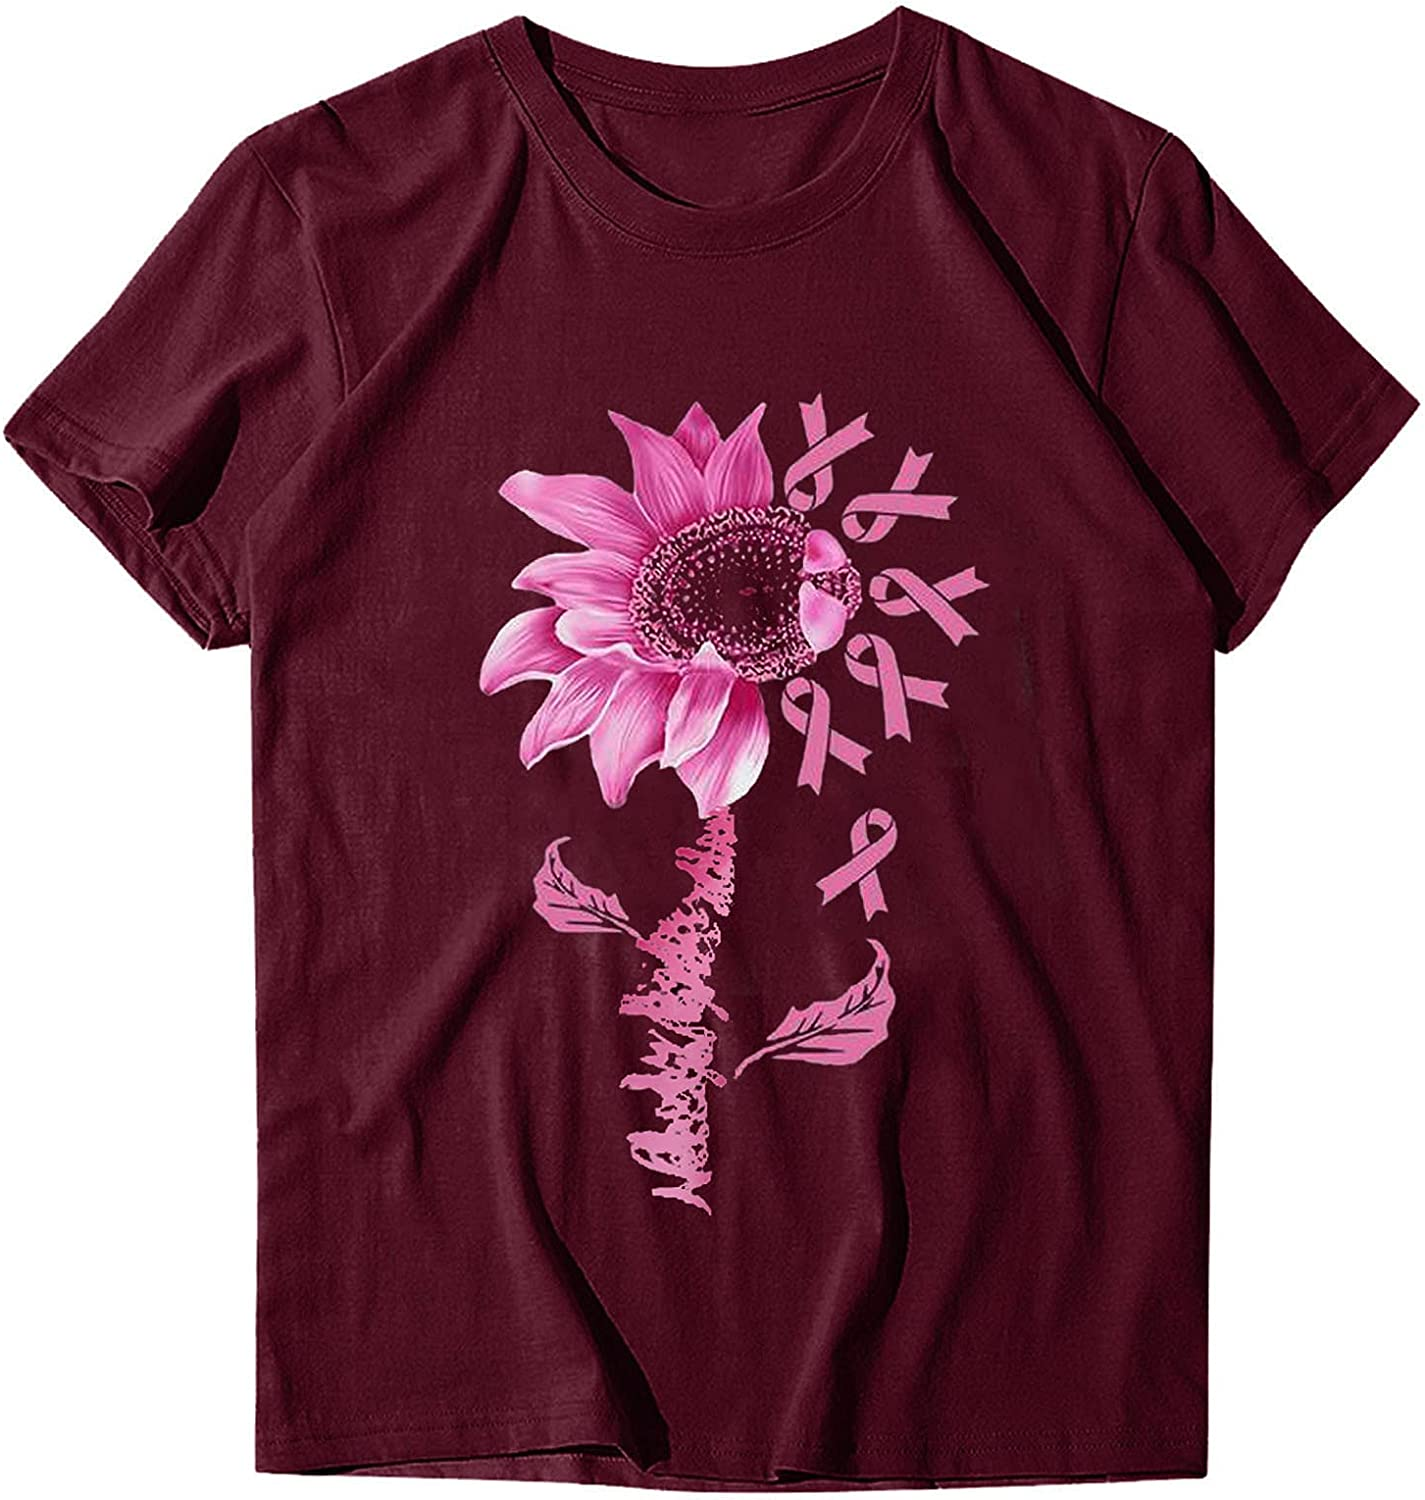 ManxiVoo Women's Tops Max 67% OFF Casual Short New product Sleeve P Tee Shirt Printing T